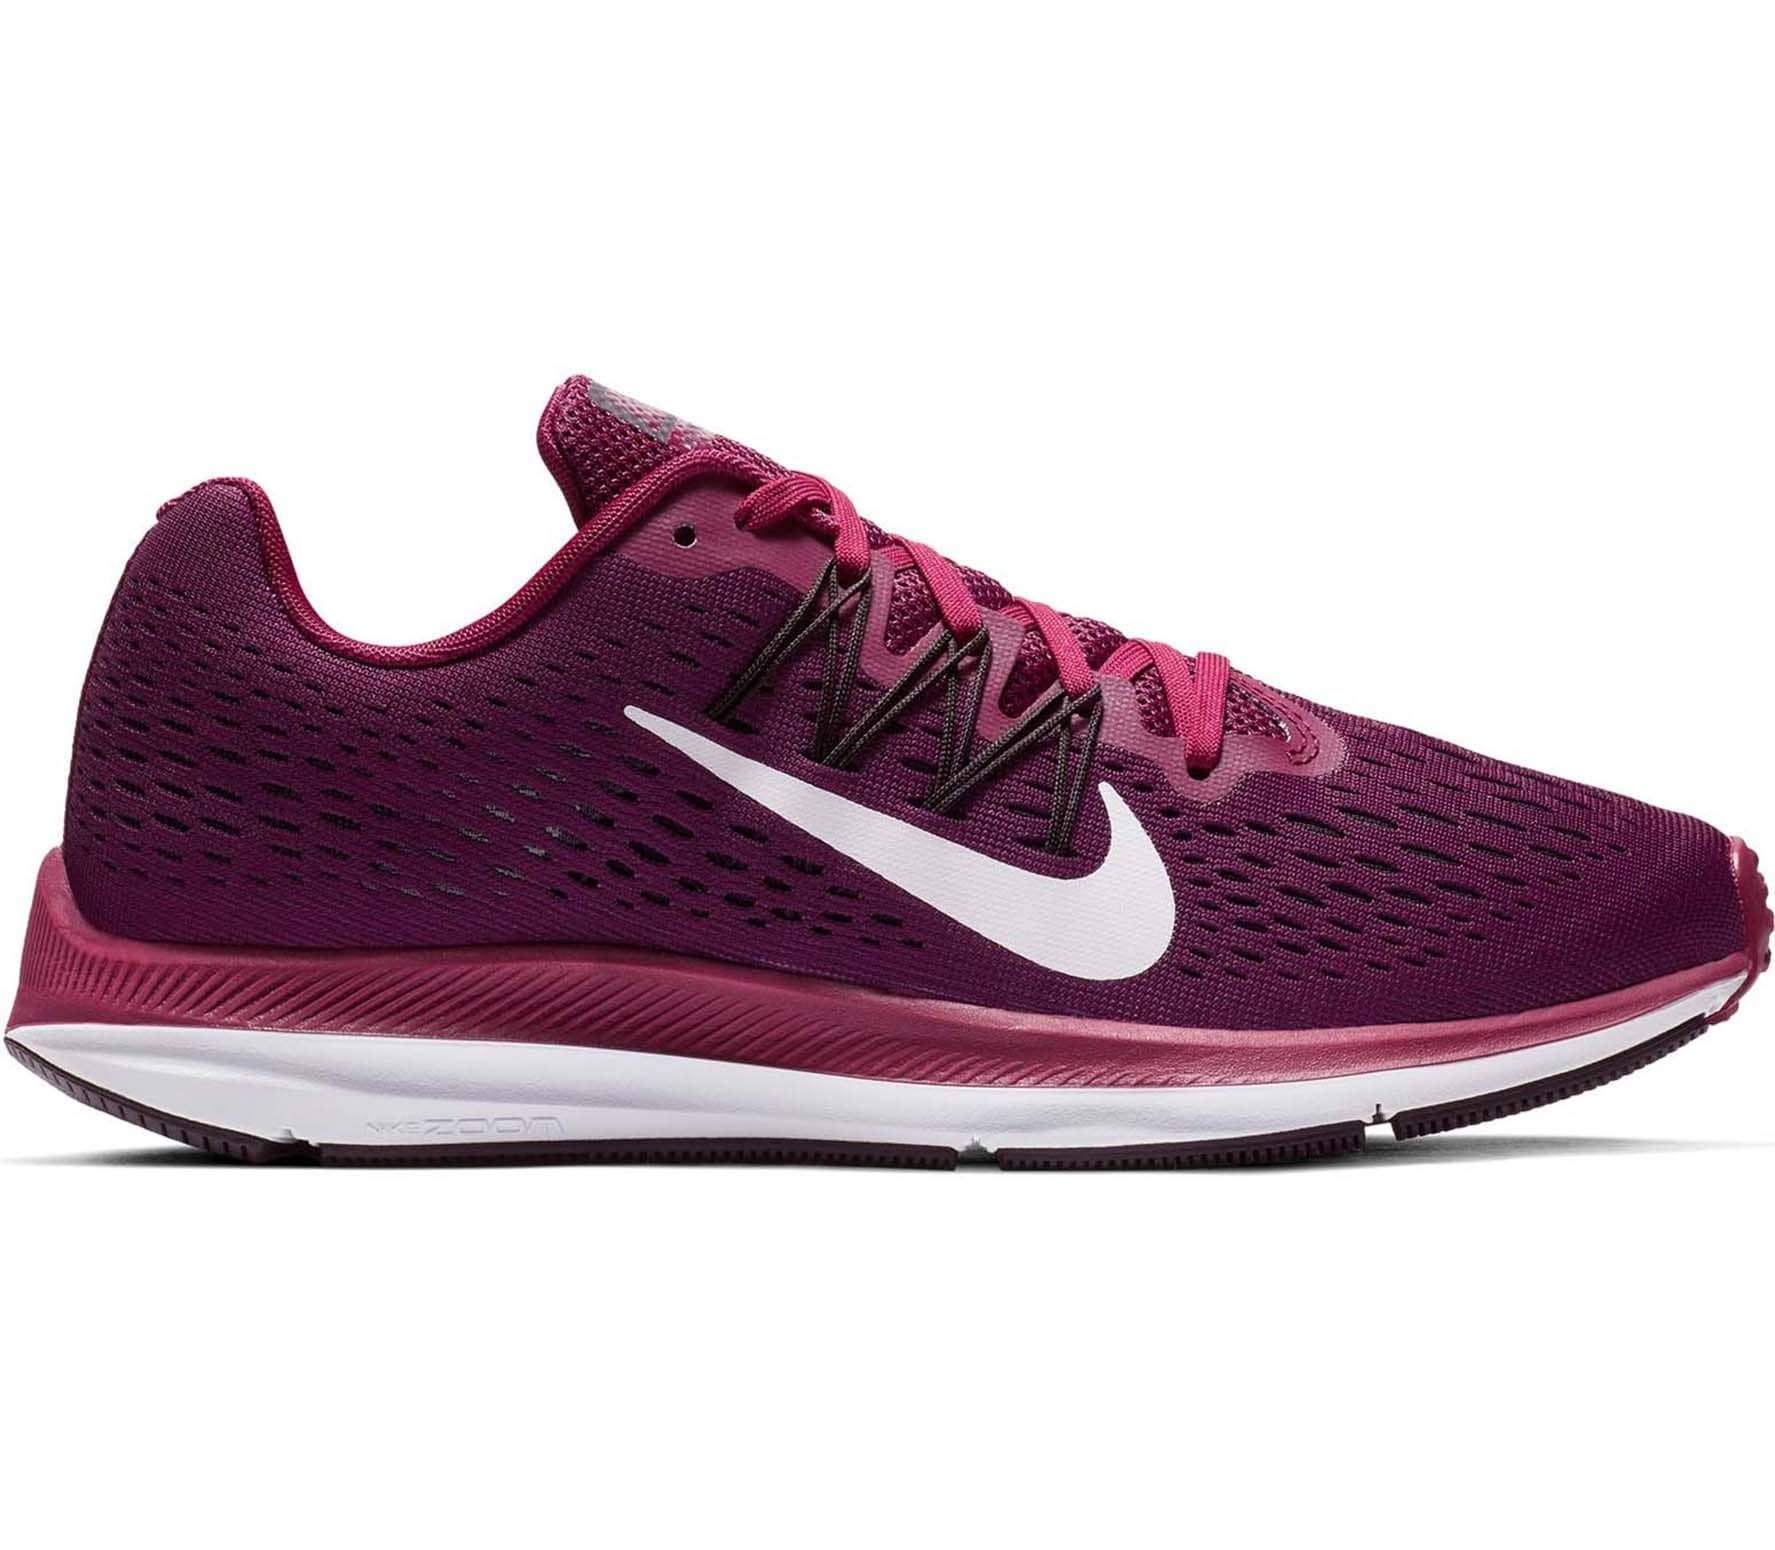 42d54ae1599 Nike - Air Zoom Winflo 5 women s running shoes (purple) - buy it at ...